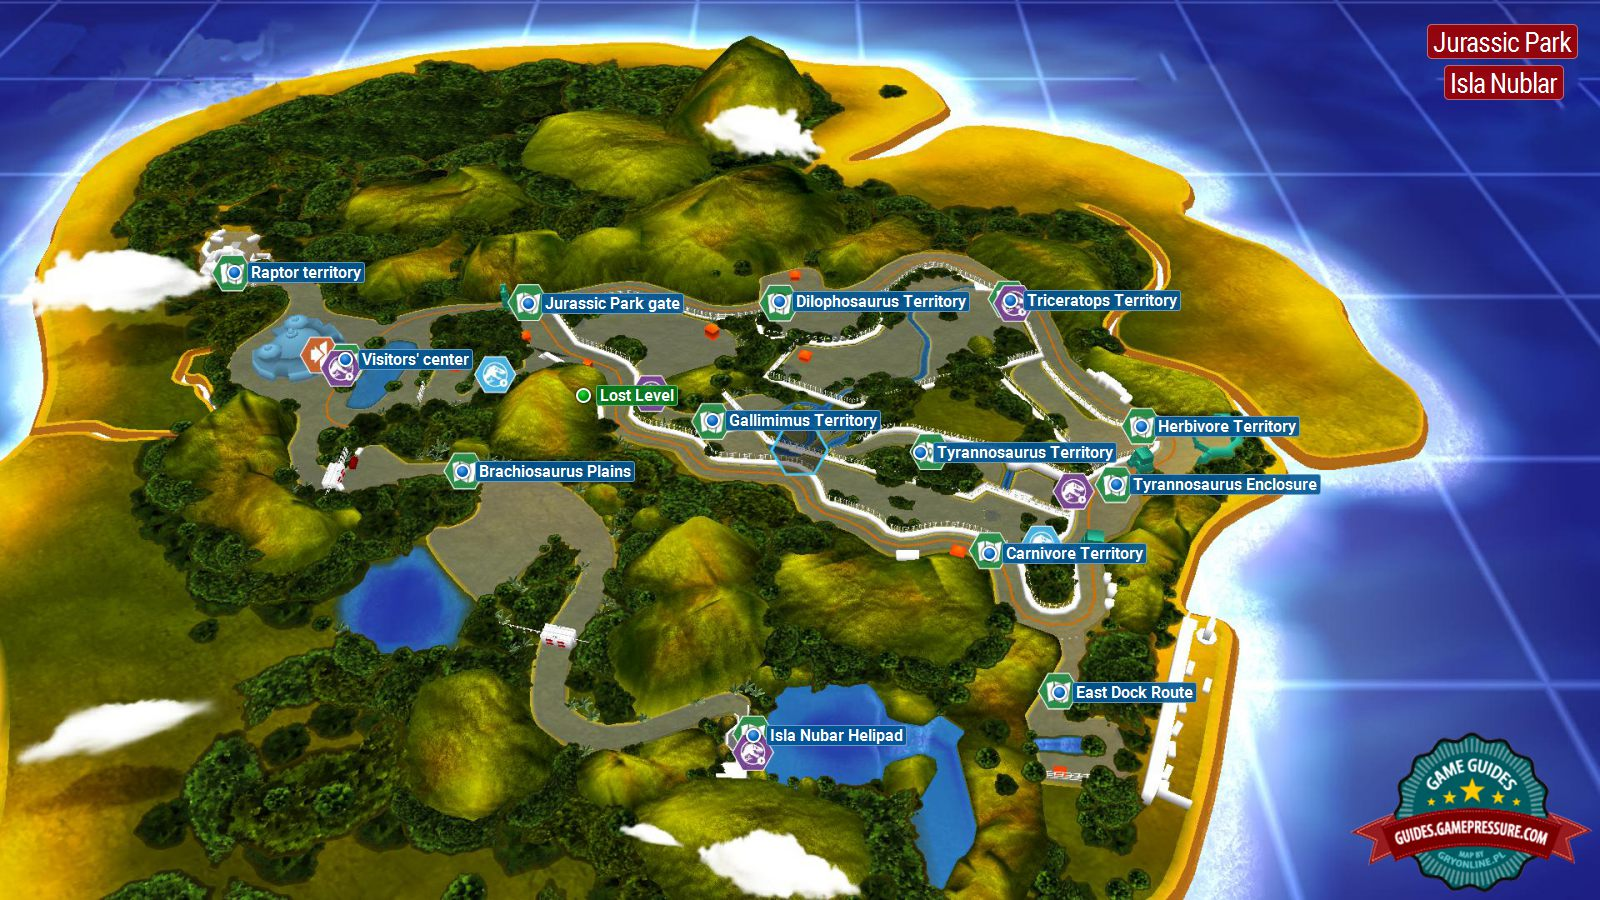 Introduction and map jurassic park secrets in free roam lego lego jurassic world jurassic park gumiabroncs Images